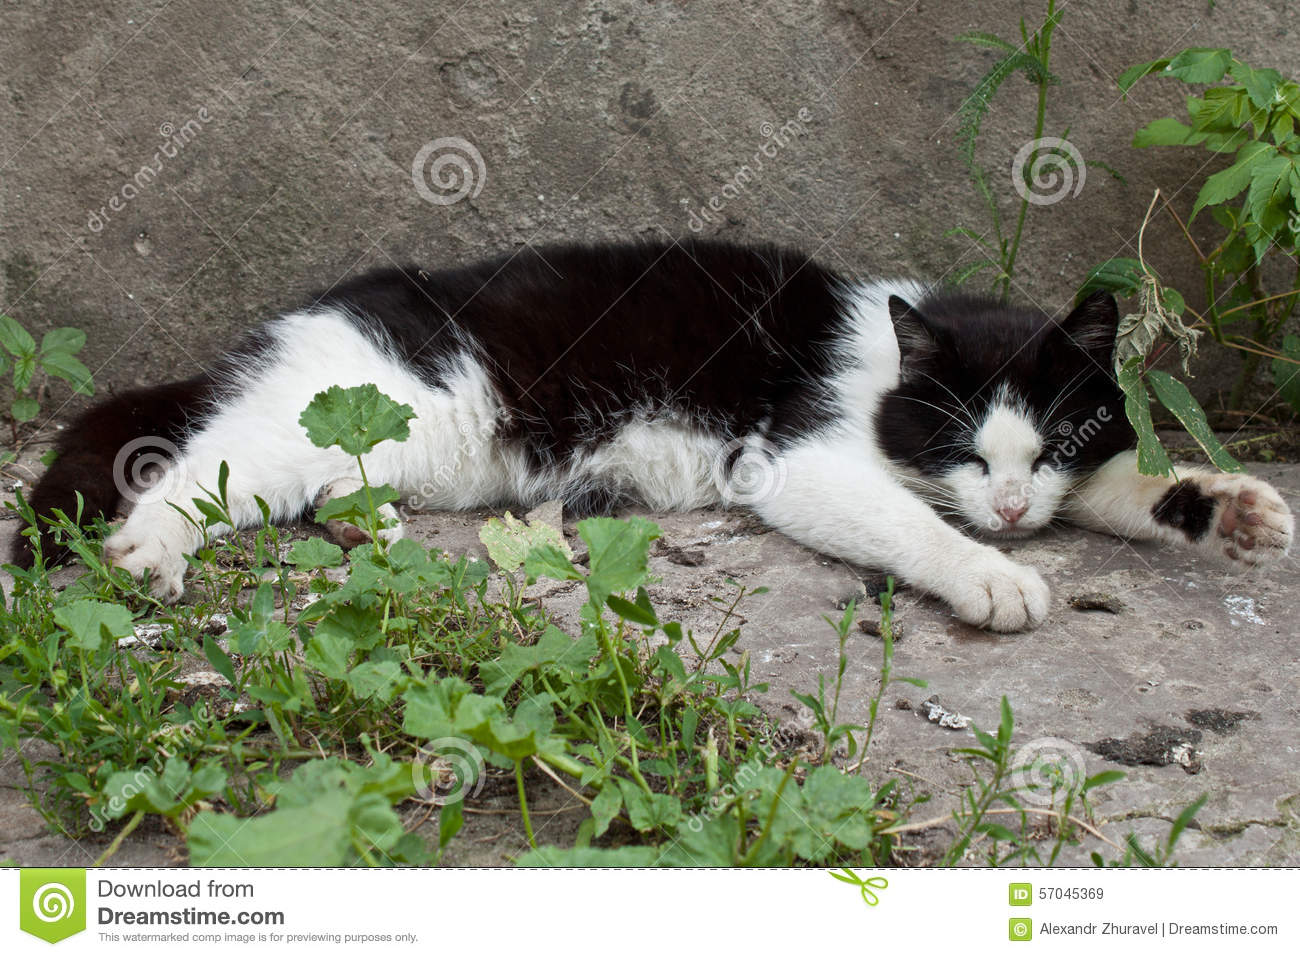 Cat Sleeping Stock Photo - Image: 57045369